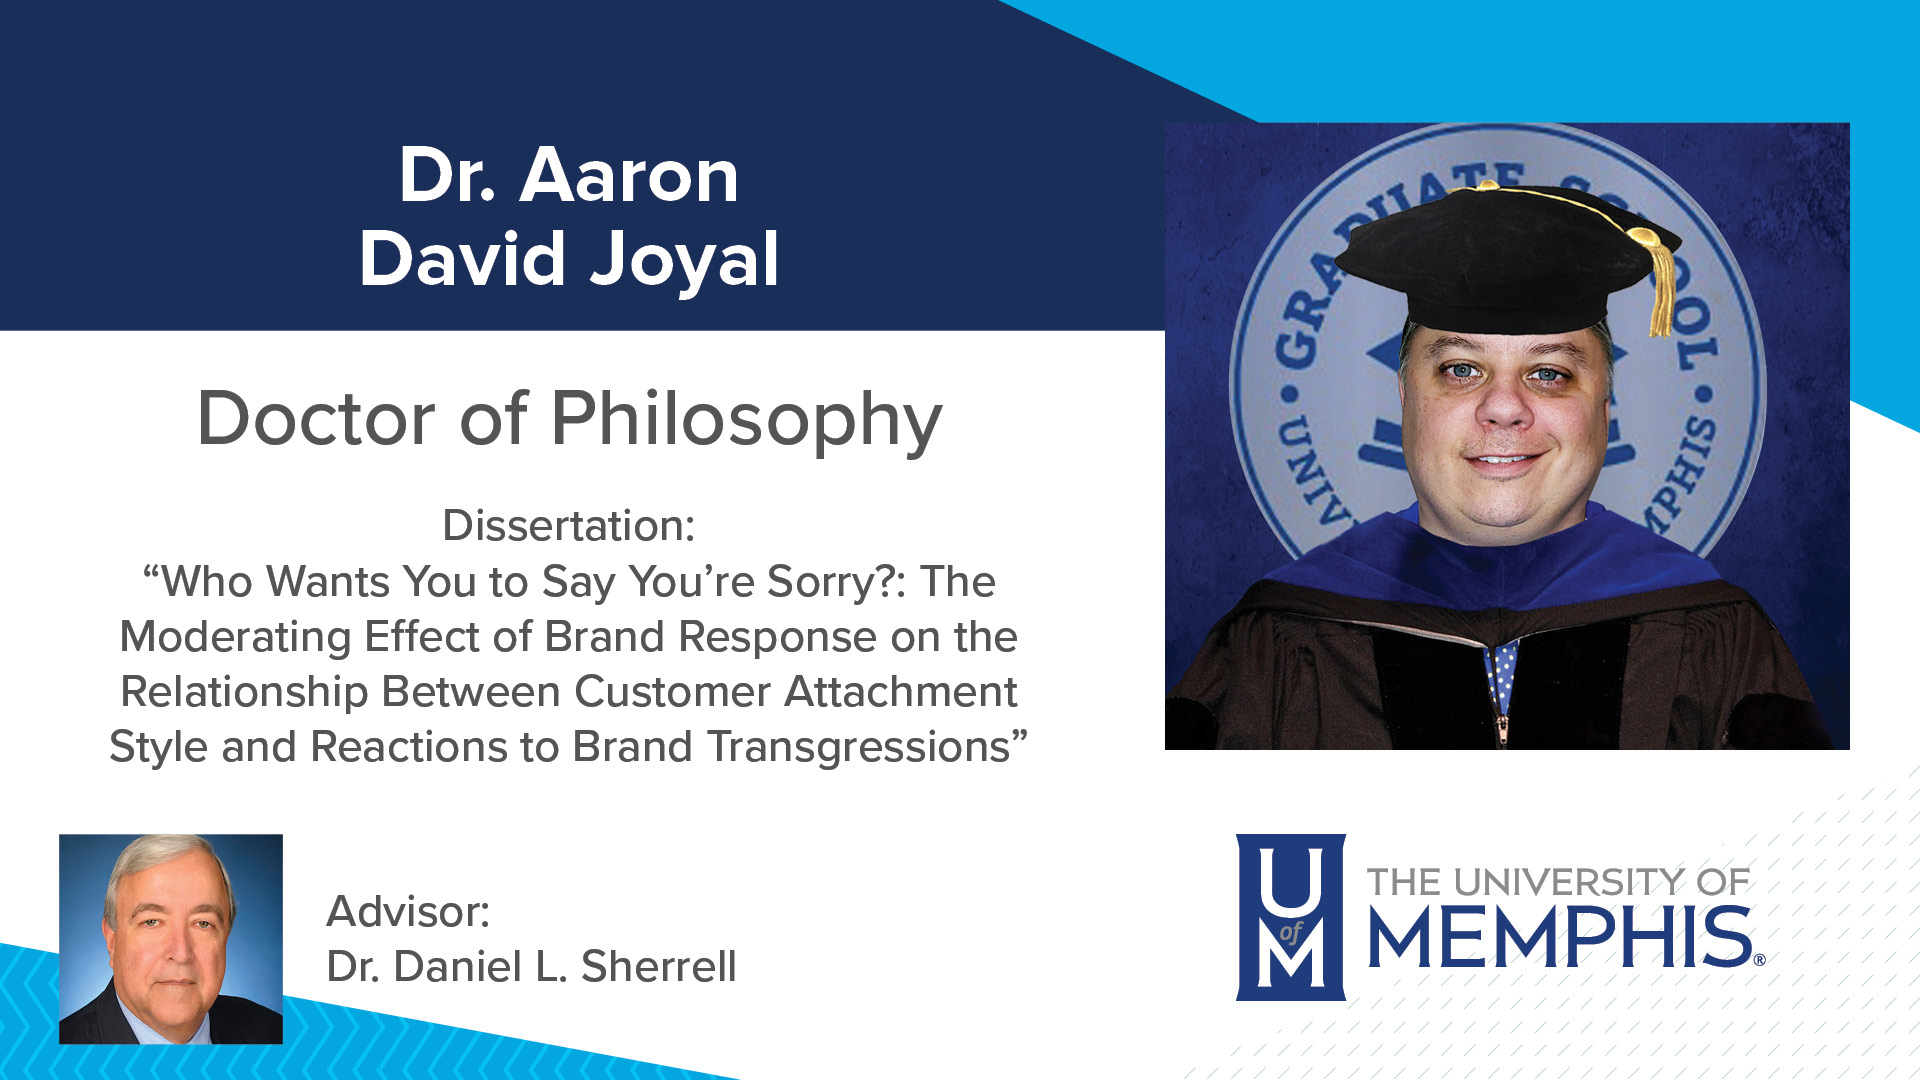 """Dr. Aaron David Joyal Dissertation: """"Who Wants You To Say You're Sorry?: The Moderating Effect Of Brand Response On The Relationship Between Customer Attachment Style And Reactions To Brand Transgressions"""" Major Professor: Dr. Daniel L Sherrell"""